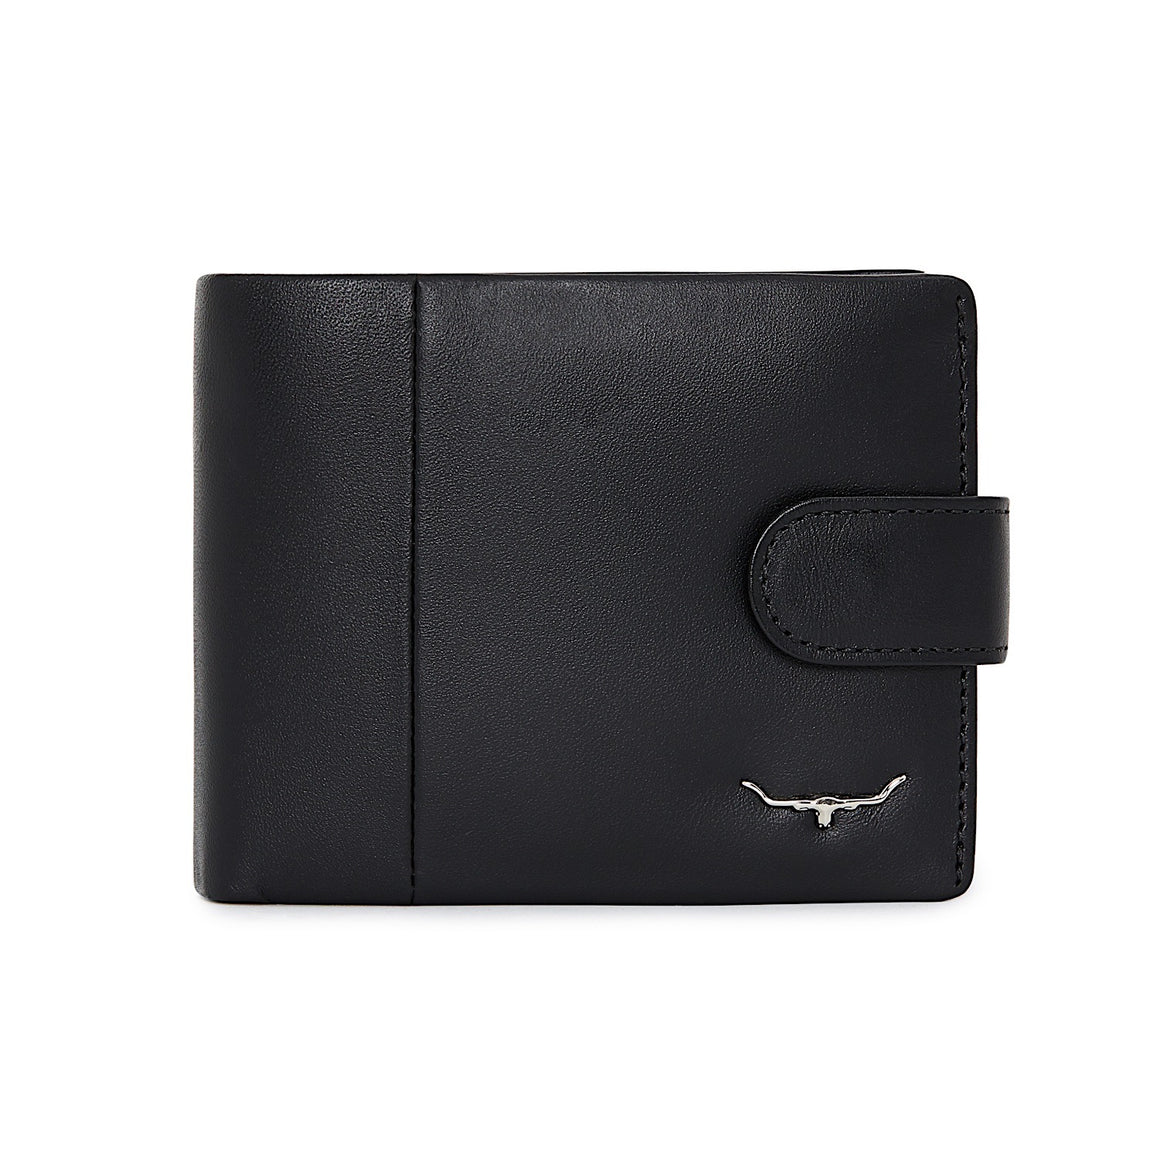 R.M.Williams Black Mens Wallet with Coin Purse